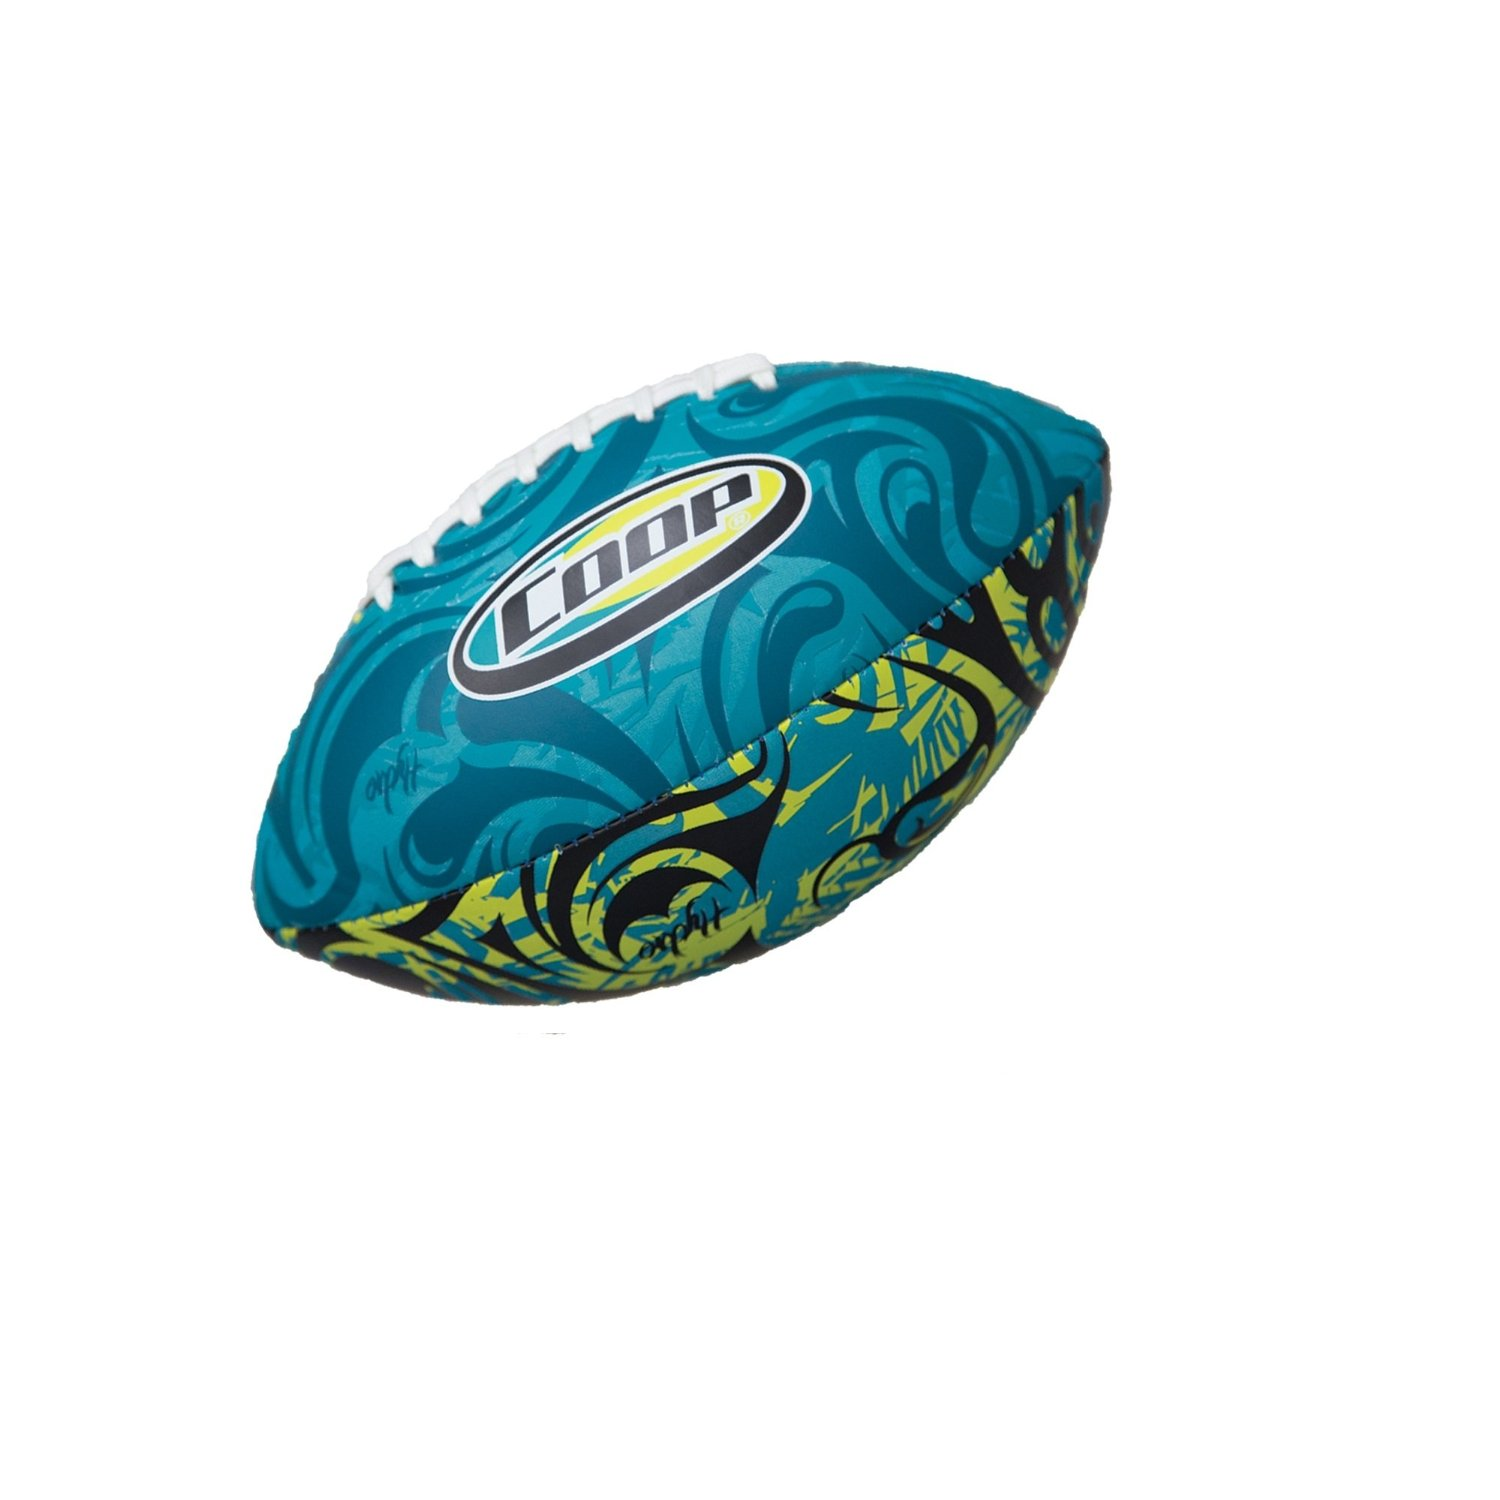 Click here to buy COOP Hydro Football Waterproof Football for Beach or Pools Aqua.